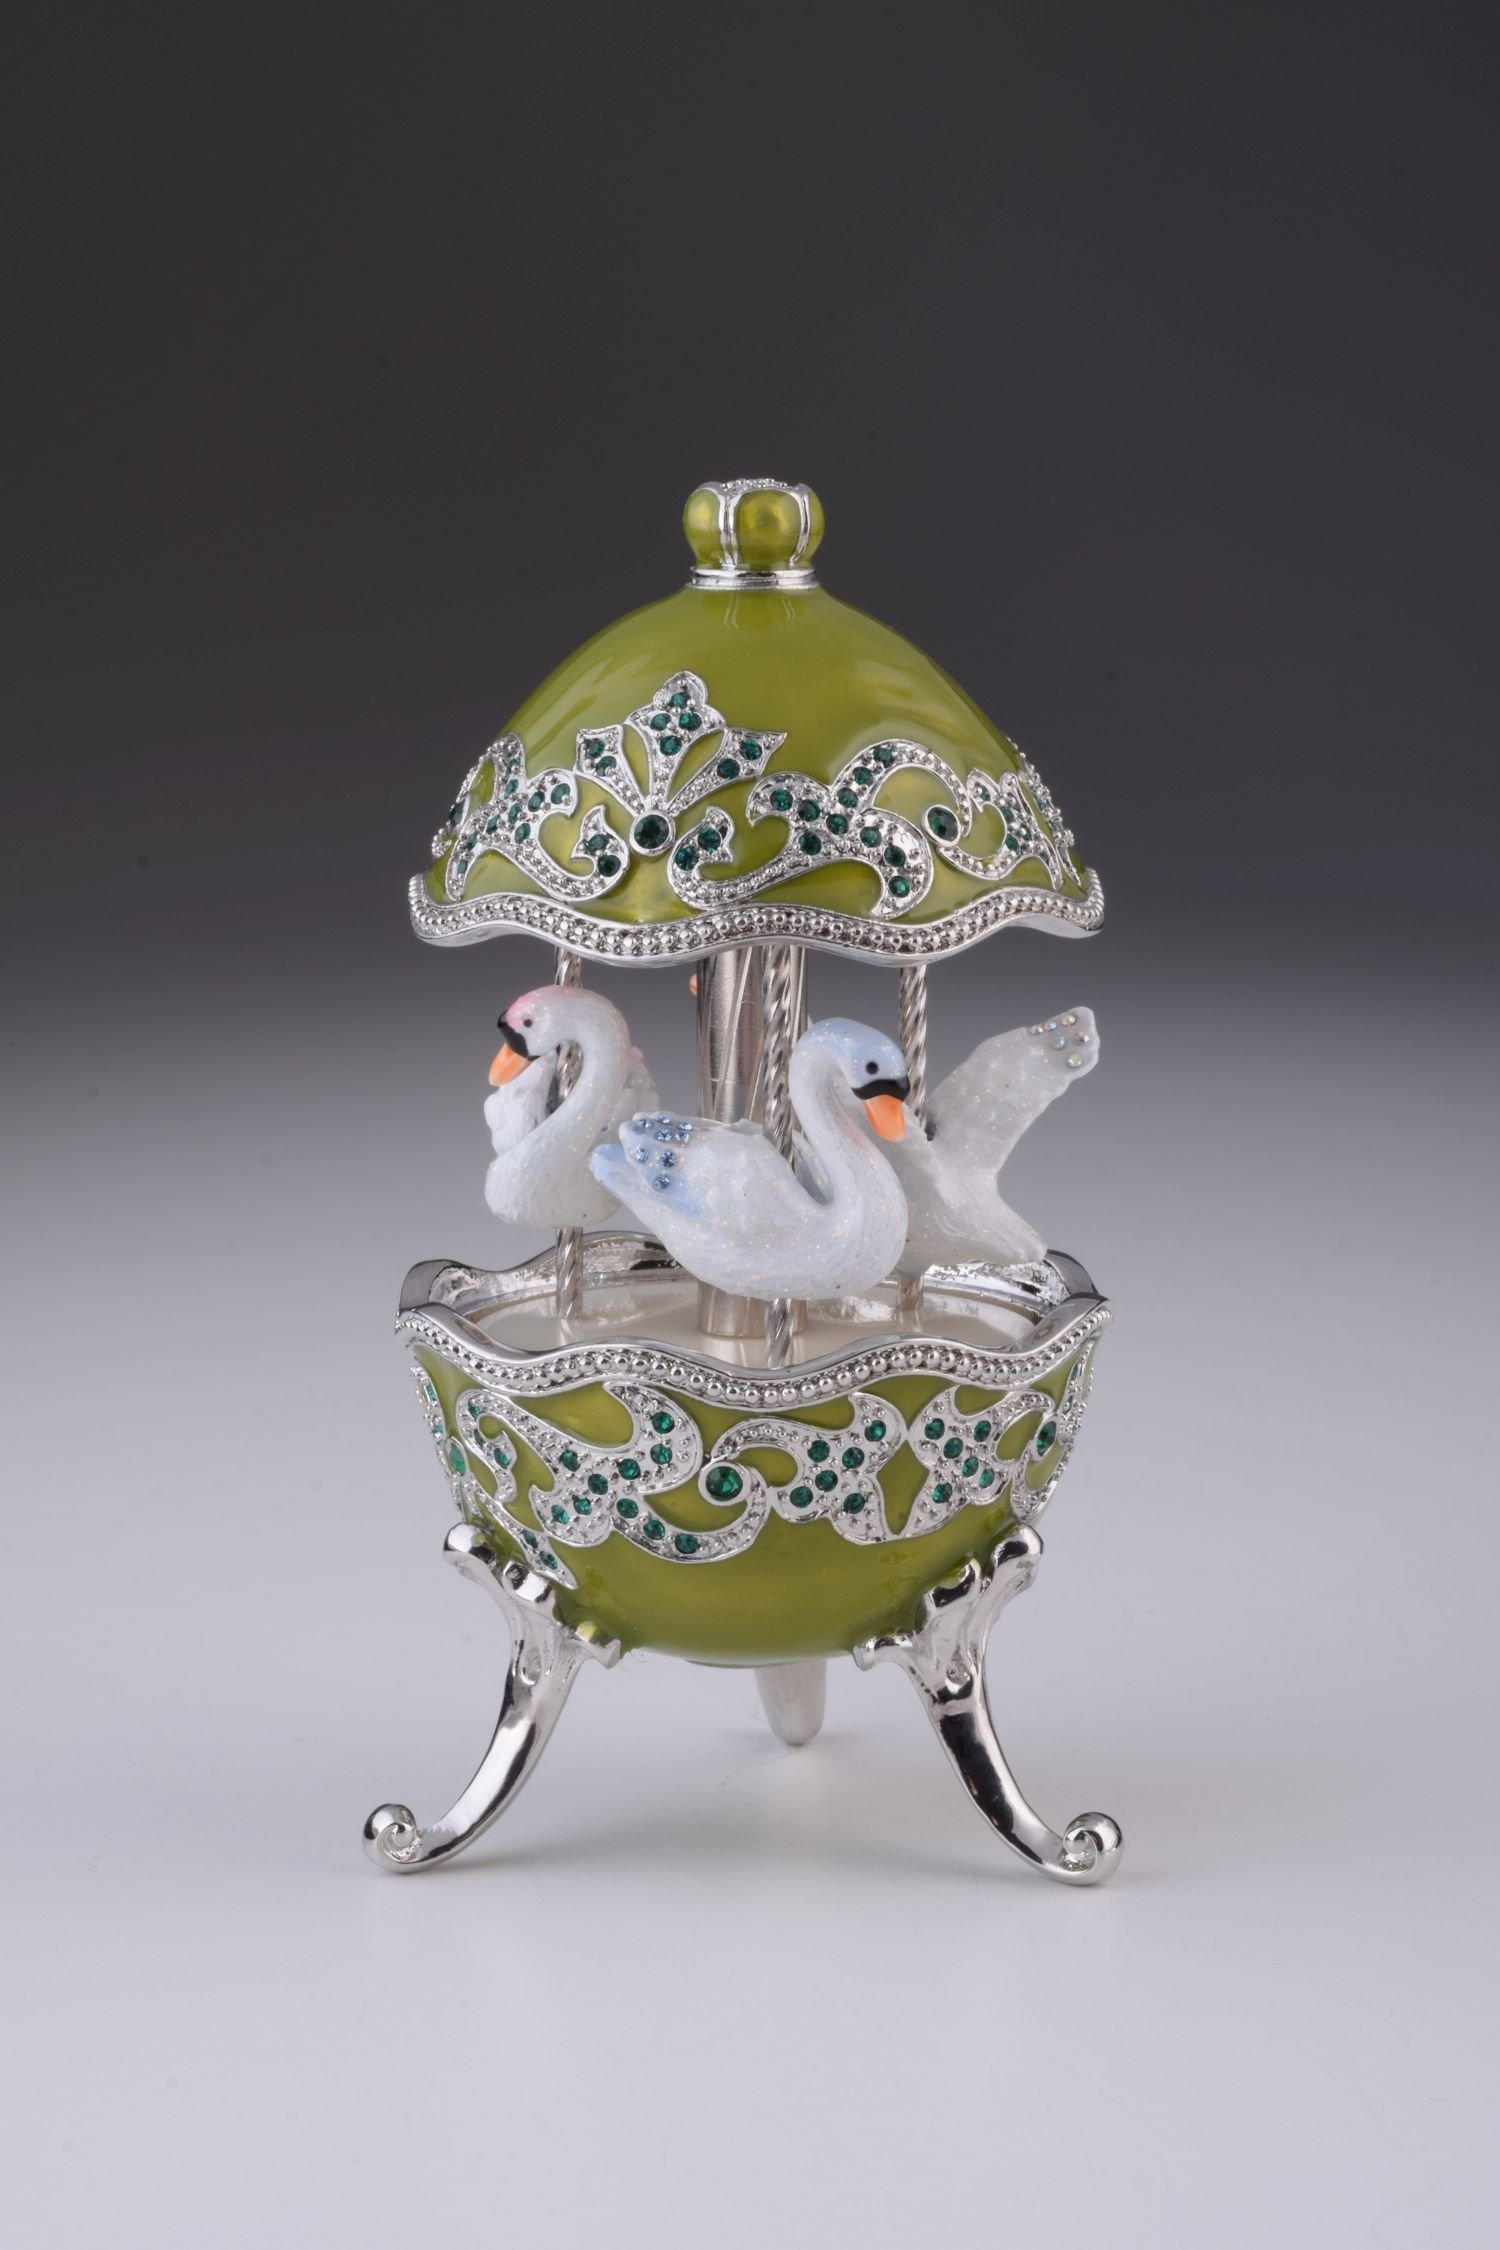 Green Carousel Egg with White Swans Spinning Music Box by Keren Kopal Faberge Styled Swarovski Crystals by Keren Kopal